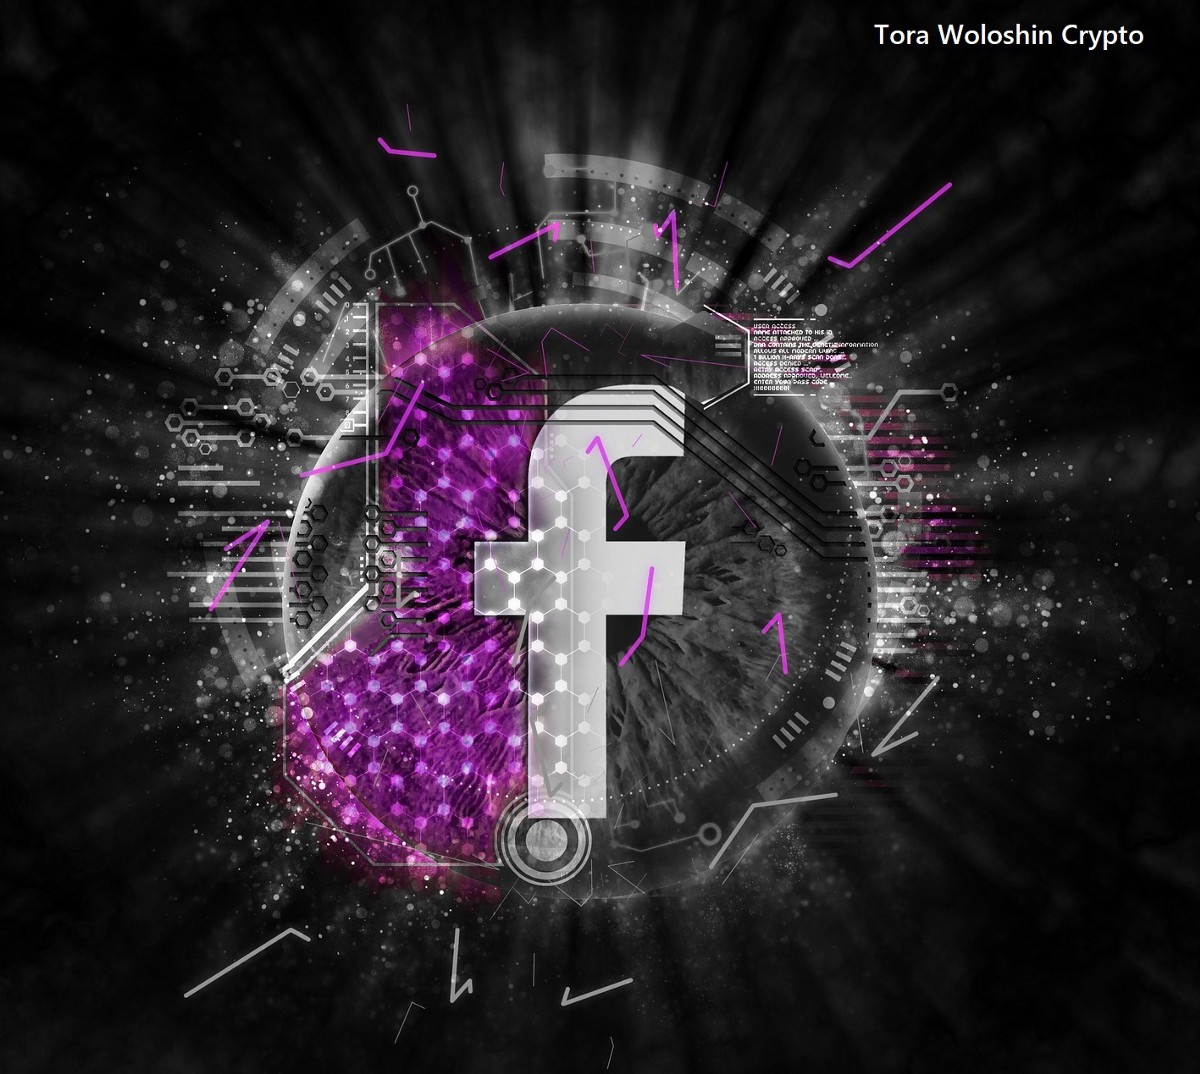 Facebook's Mark Zuckerberg explains how digital currency Libra could increase the firm's profits